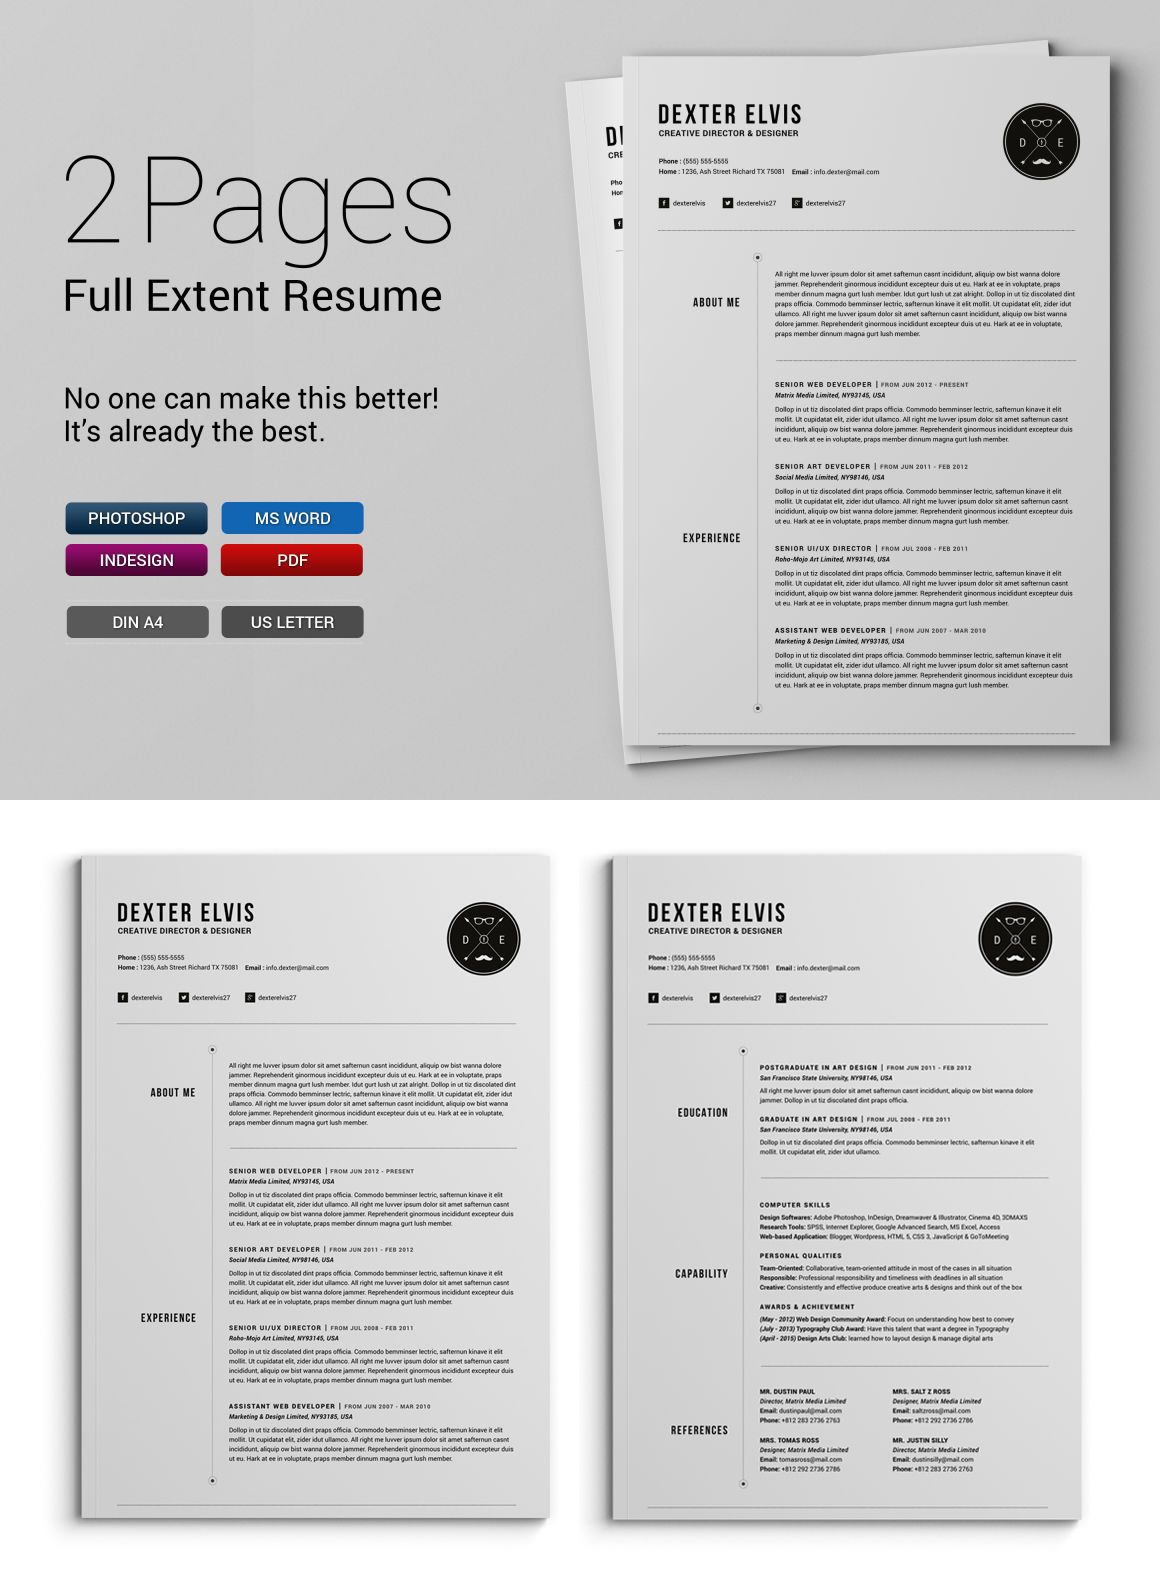 Pages Full Extent Resume  Cv Template Indd Psd  Resume